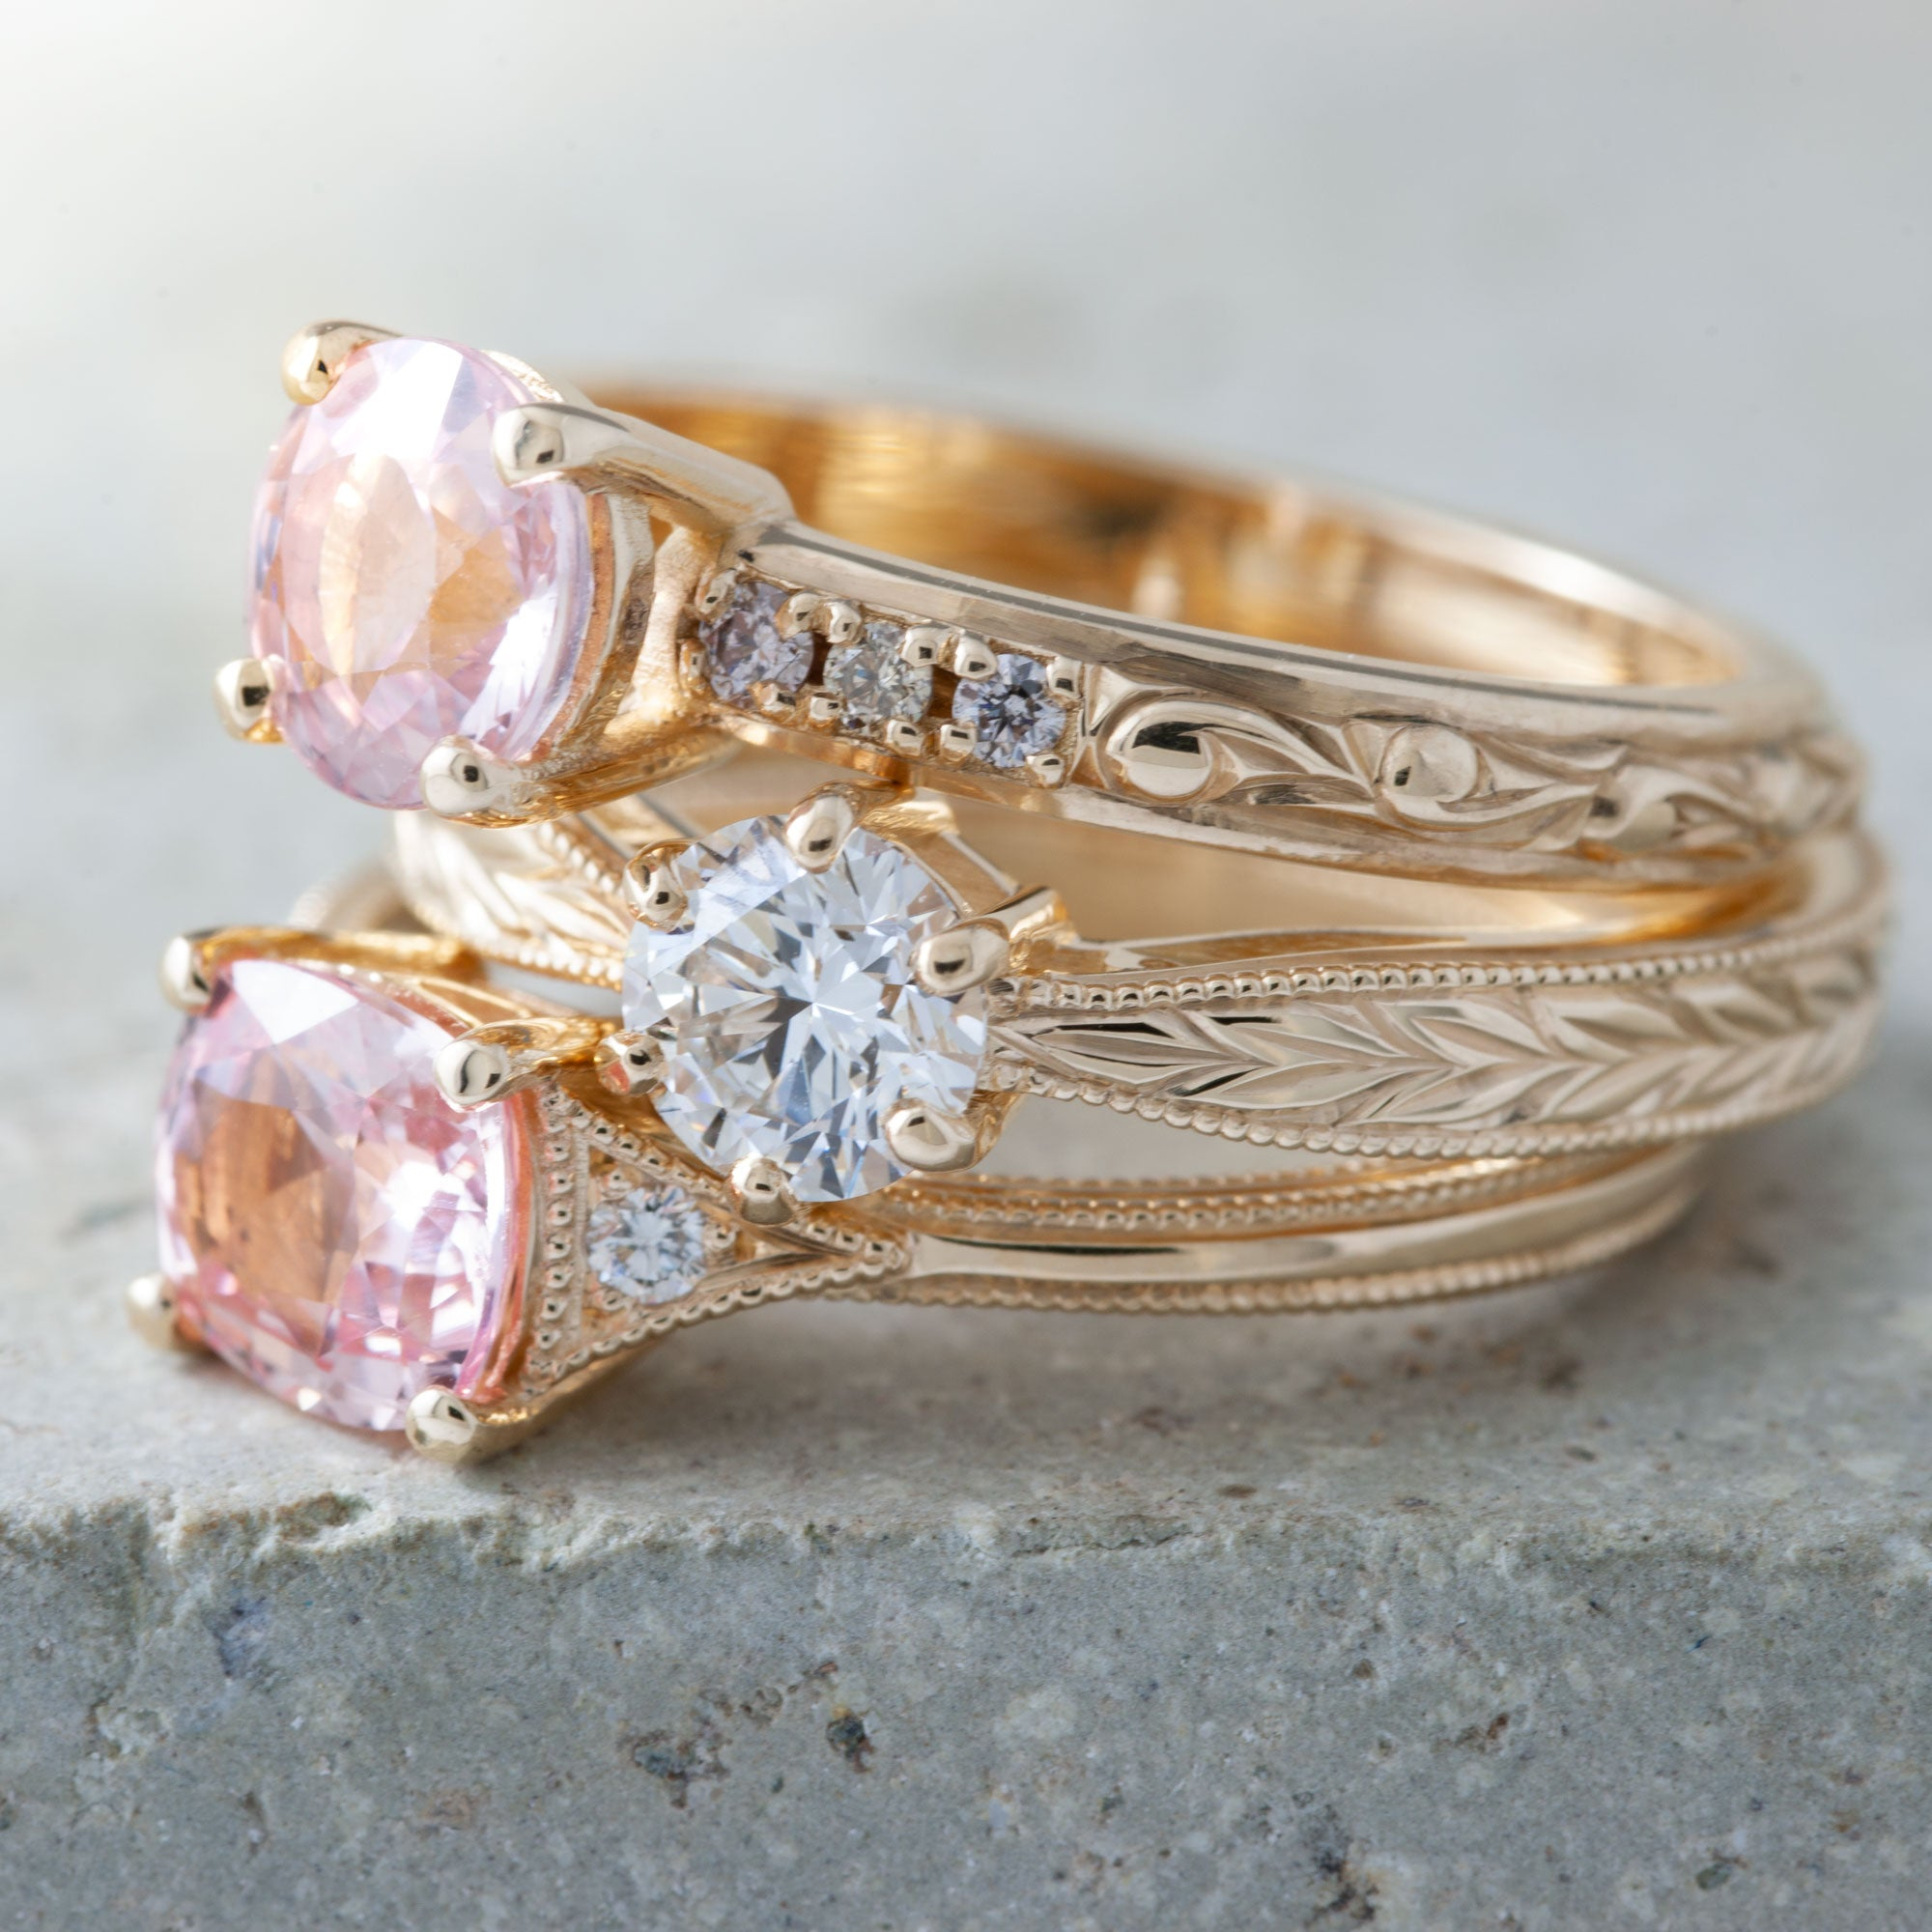 Peach Sapphire Cleo Sapphire Engagement Ring - Era Design Vancouver